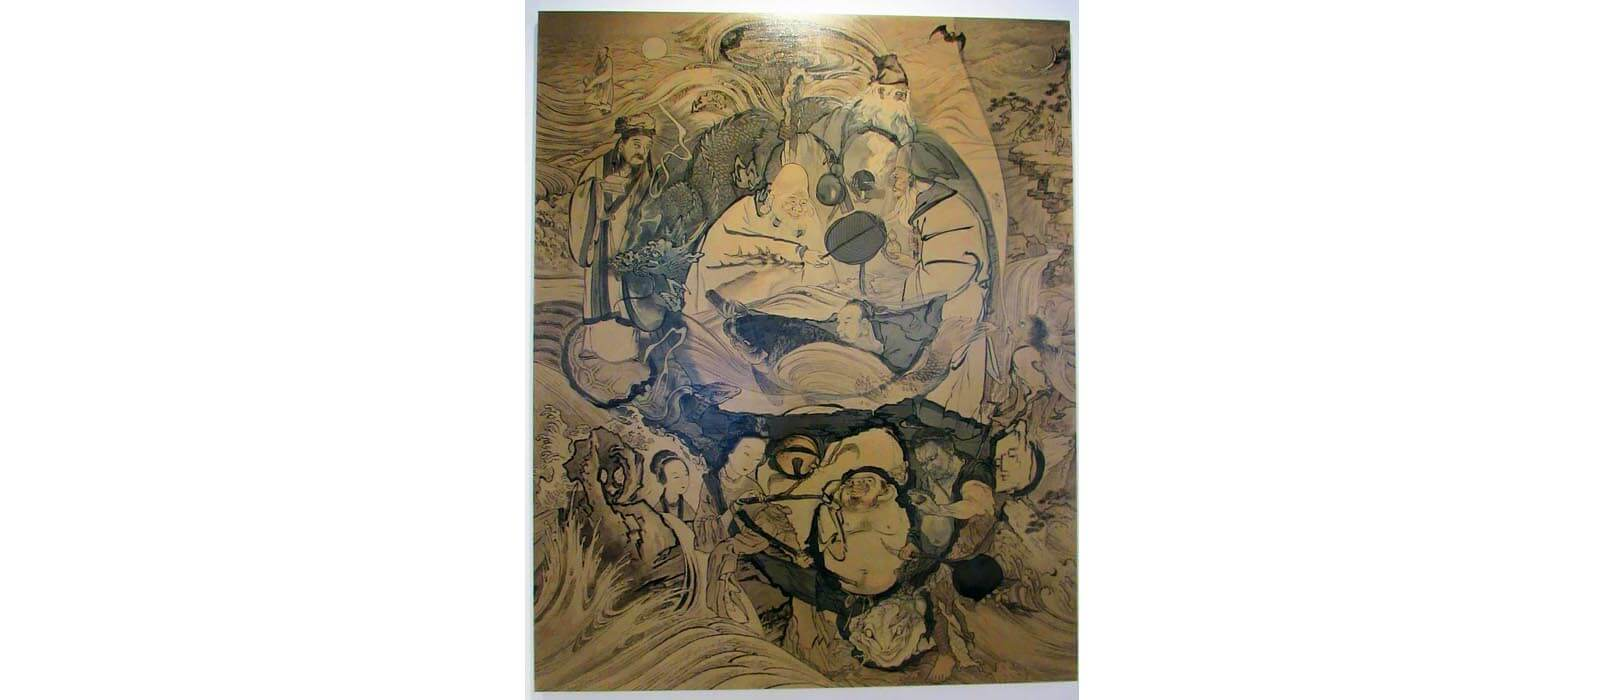 The Doraemon Exhibition - Hermits on the Waves